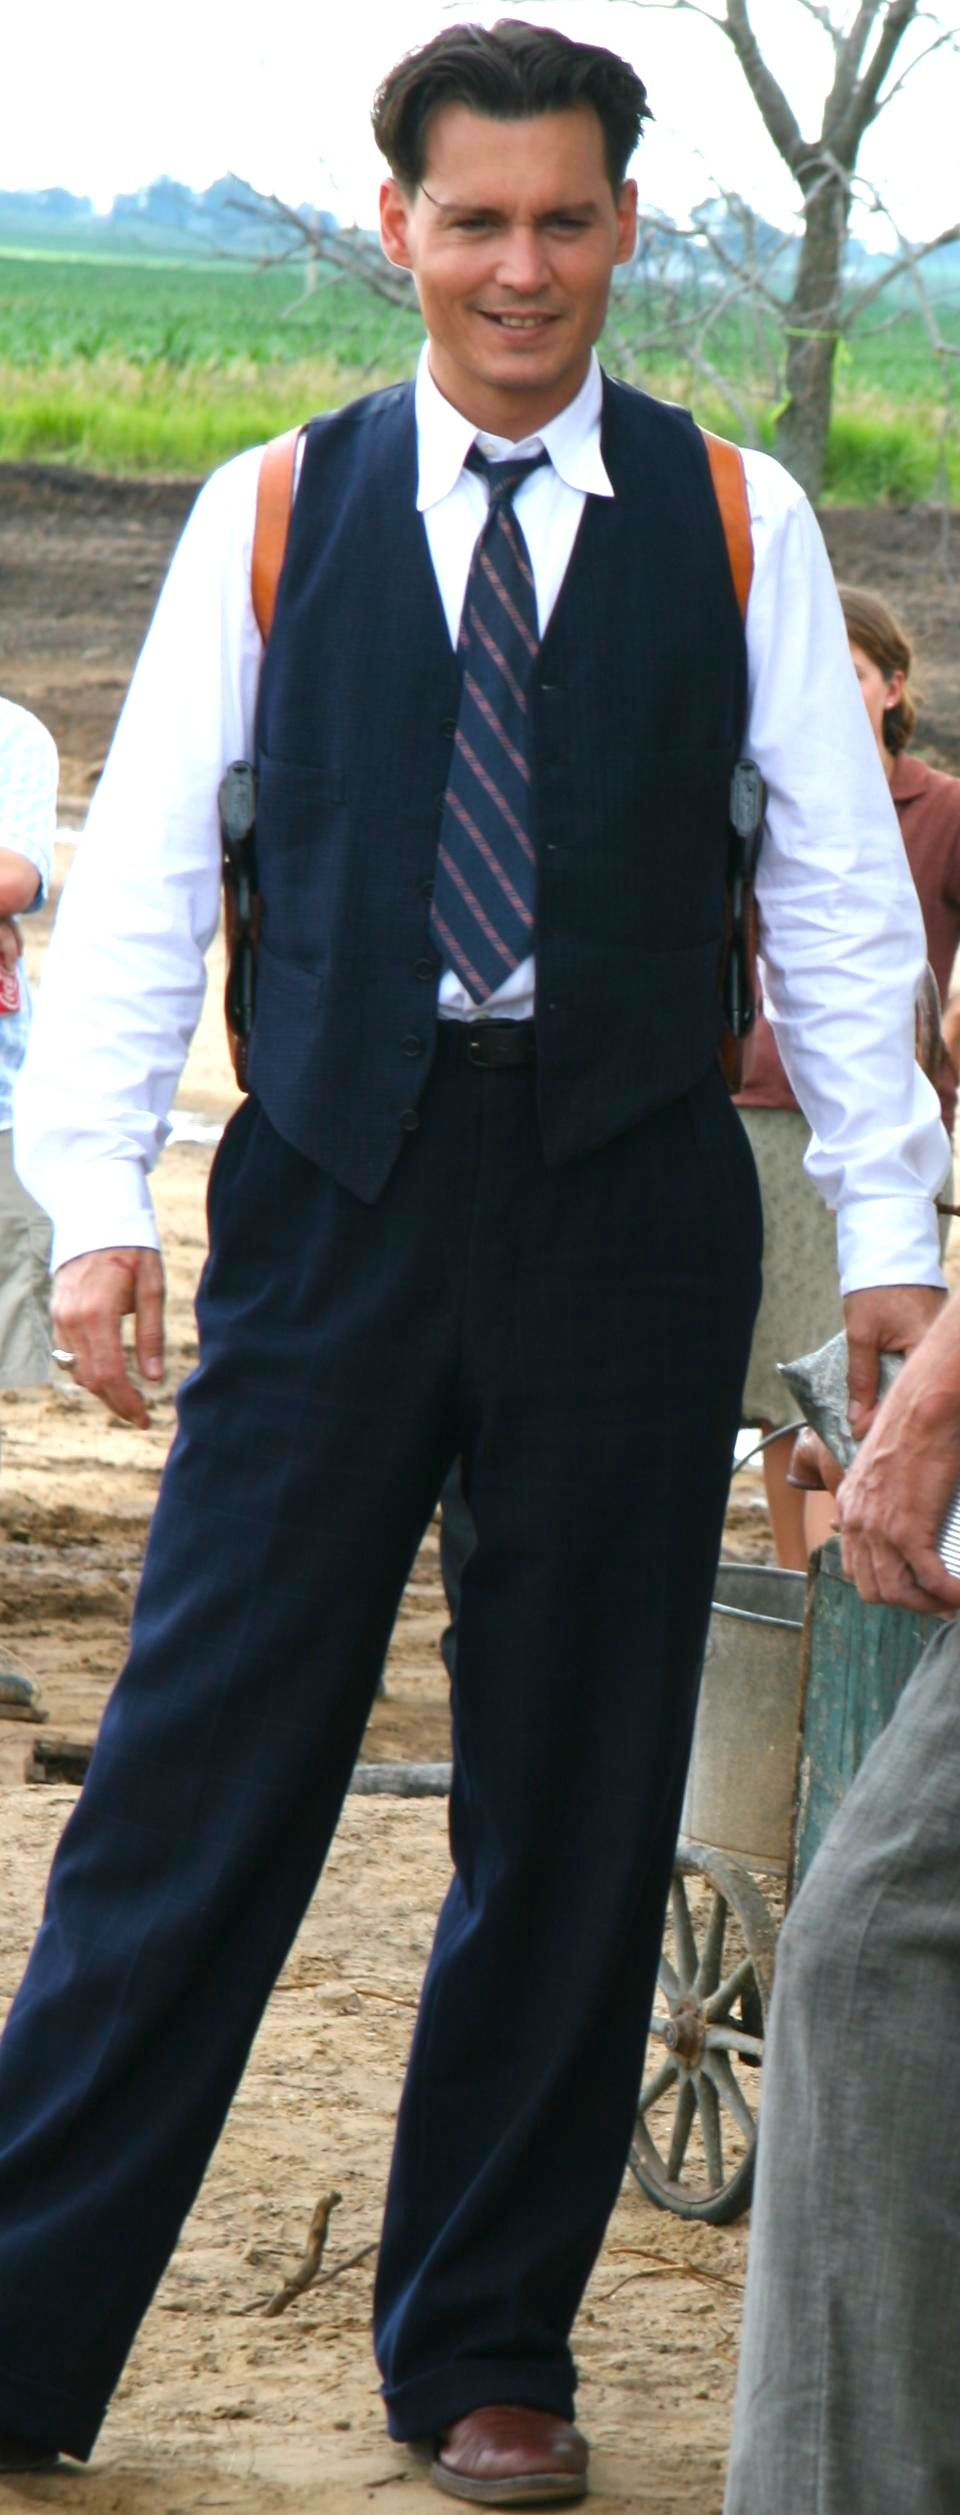 Google chrome themes johnny depp - Johnny Depp Behind The Scenes As John Dillinger In Public Enemies Costume By